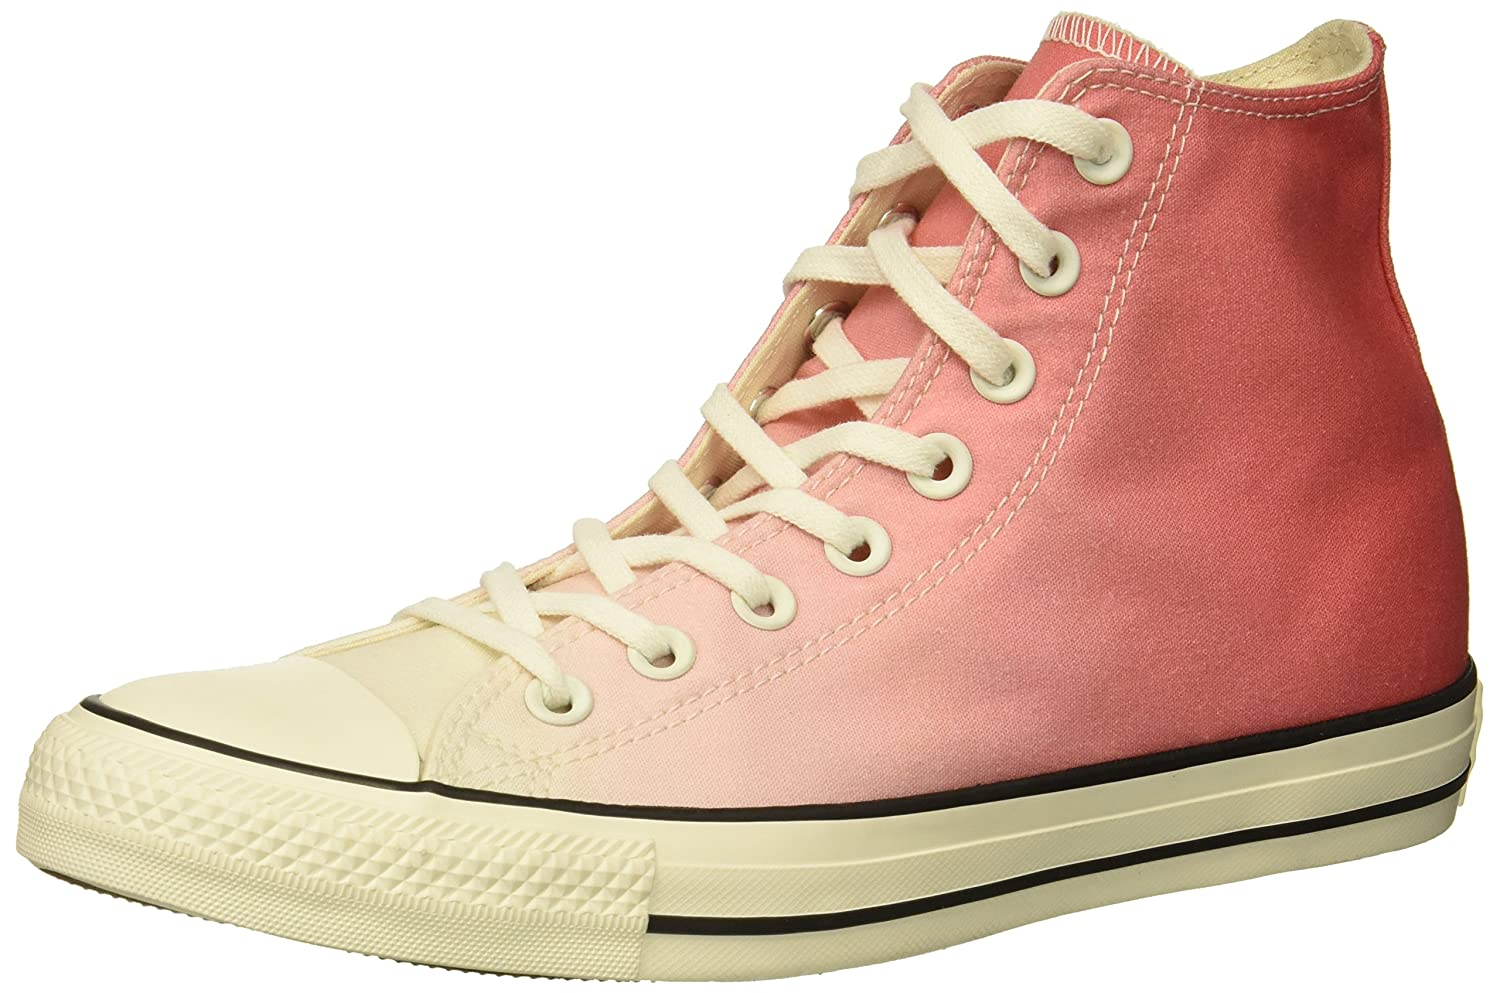 Converse Women's Chuck Taylor All Star Ombre High Top Sneaker B078NG4RV1 10 M US|Punch Coral/Egret/Egret